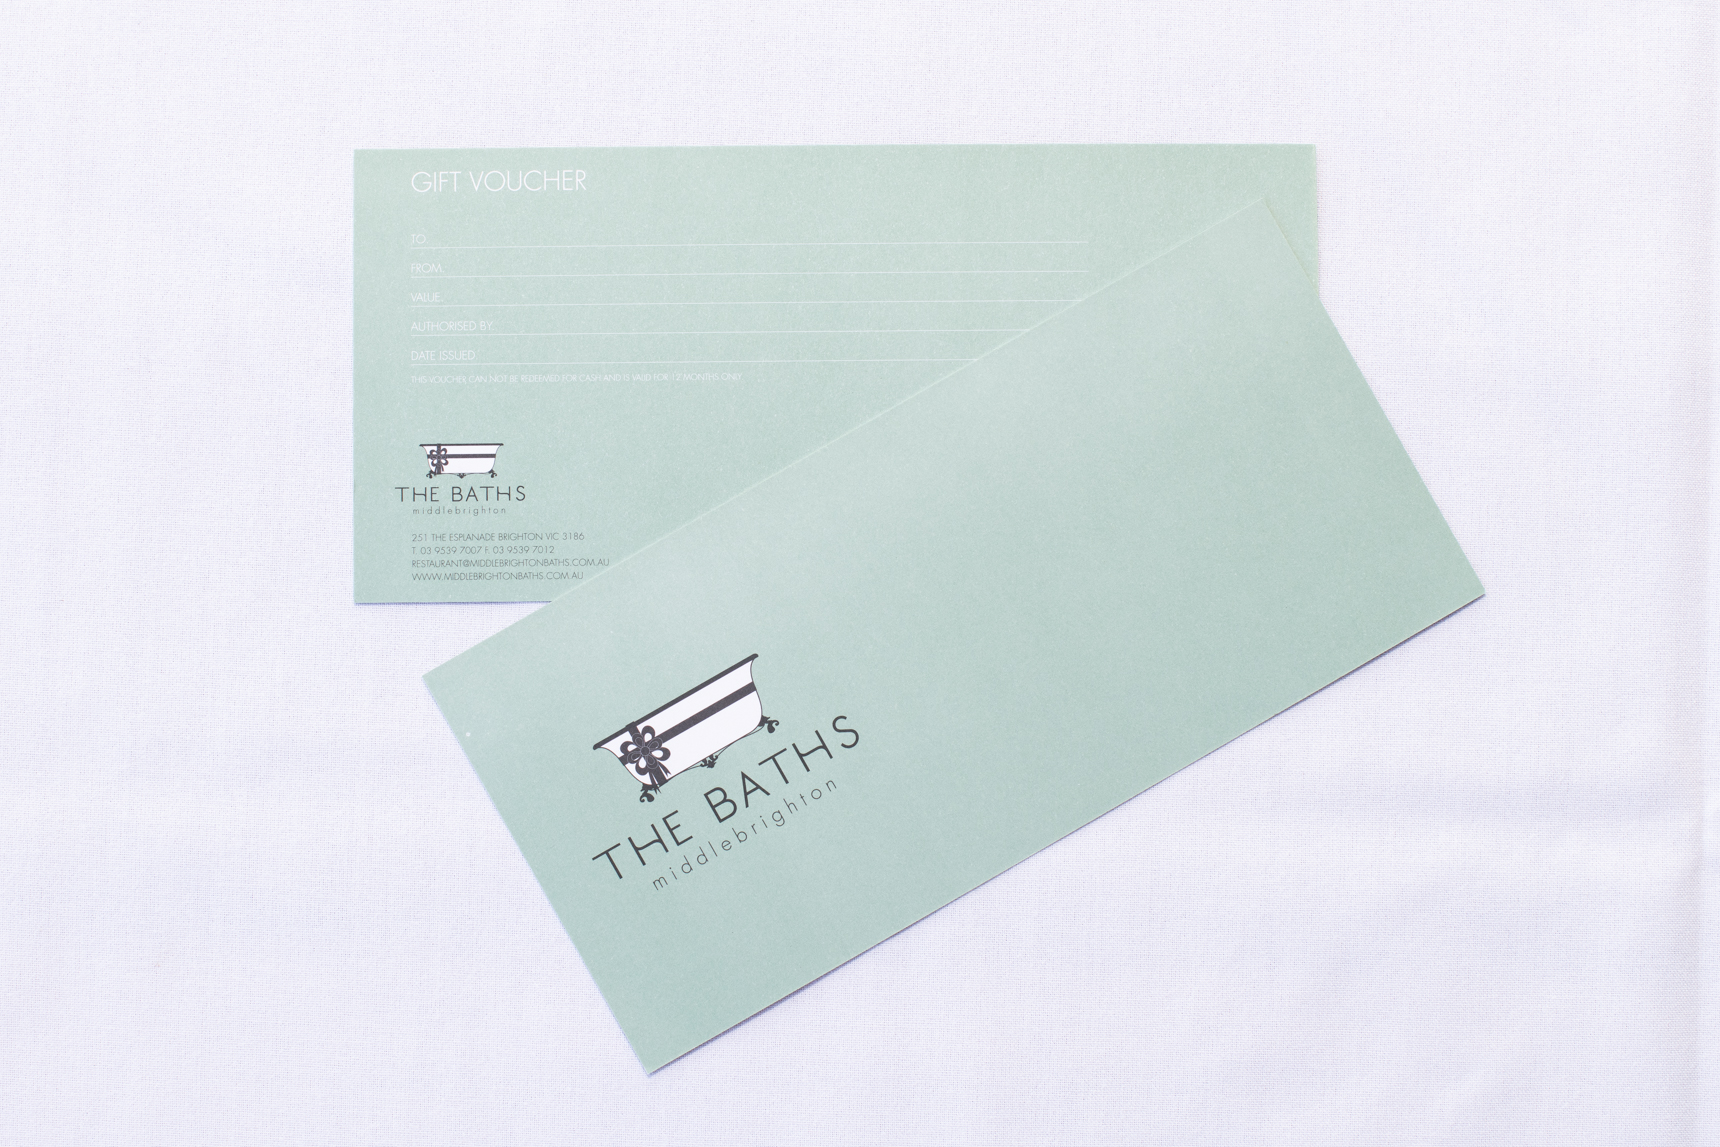 Gift Vouchers - Gift vouchers are available for purchase at The Baths Upstairs, Cafe & Bar online.